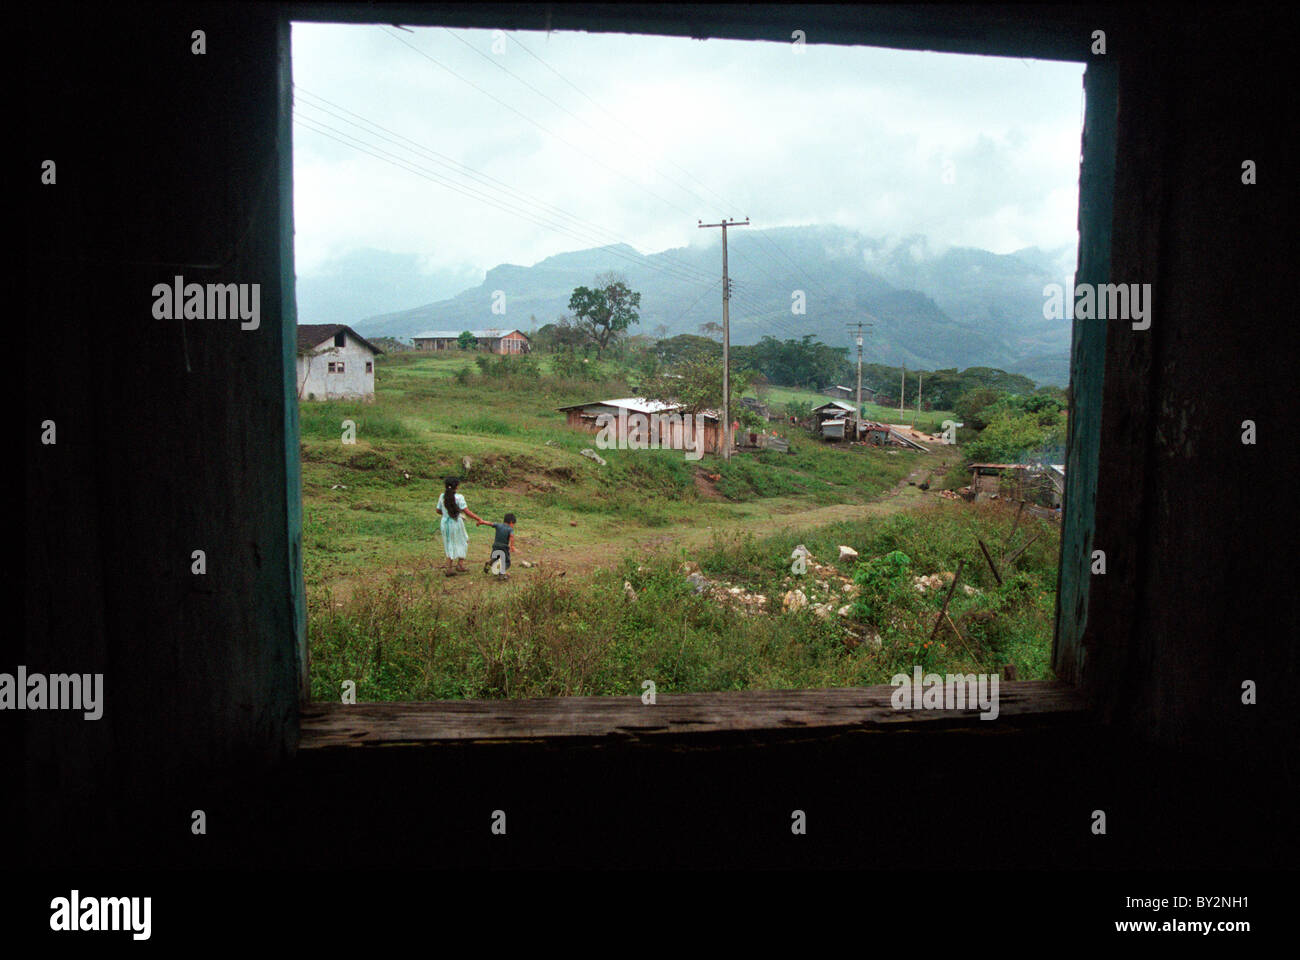 View from inside a window in a Zapatista community in the state of Chiapas, Mexico. - Stock Image